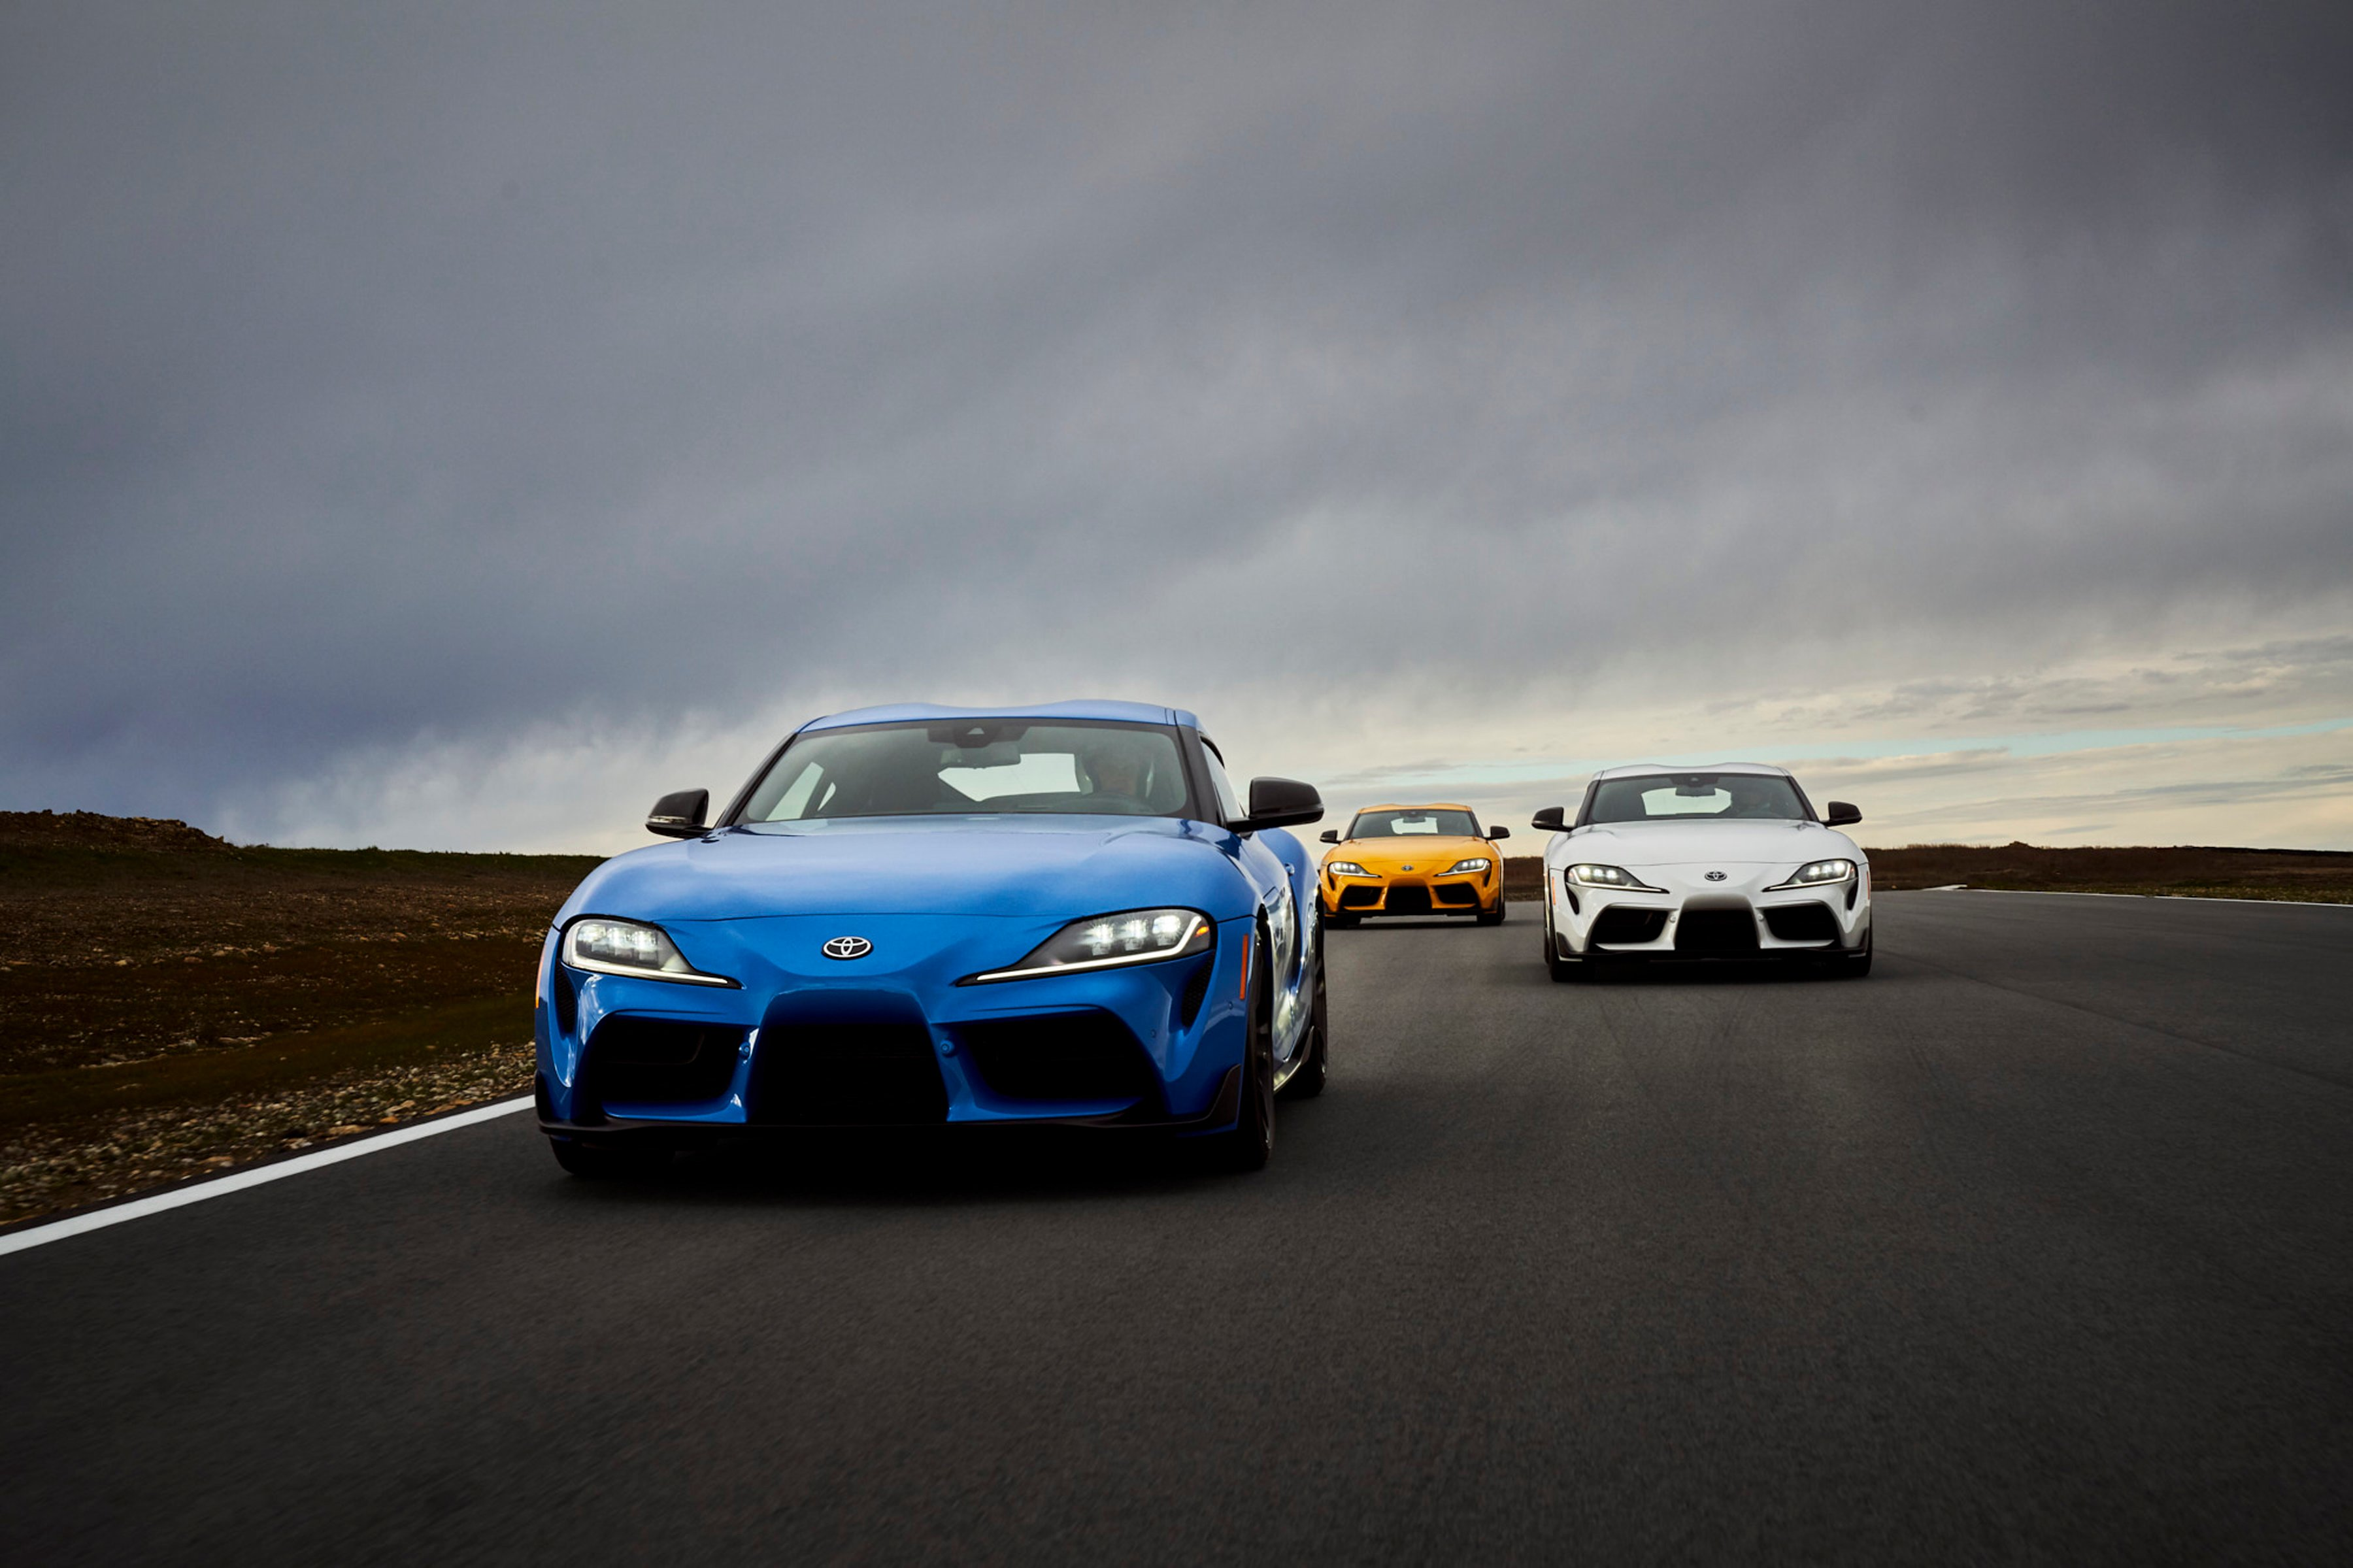 2021 Toyota Supras driving on the roads of Long Island, NY.